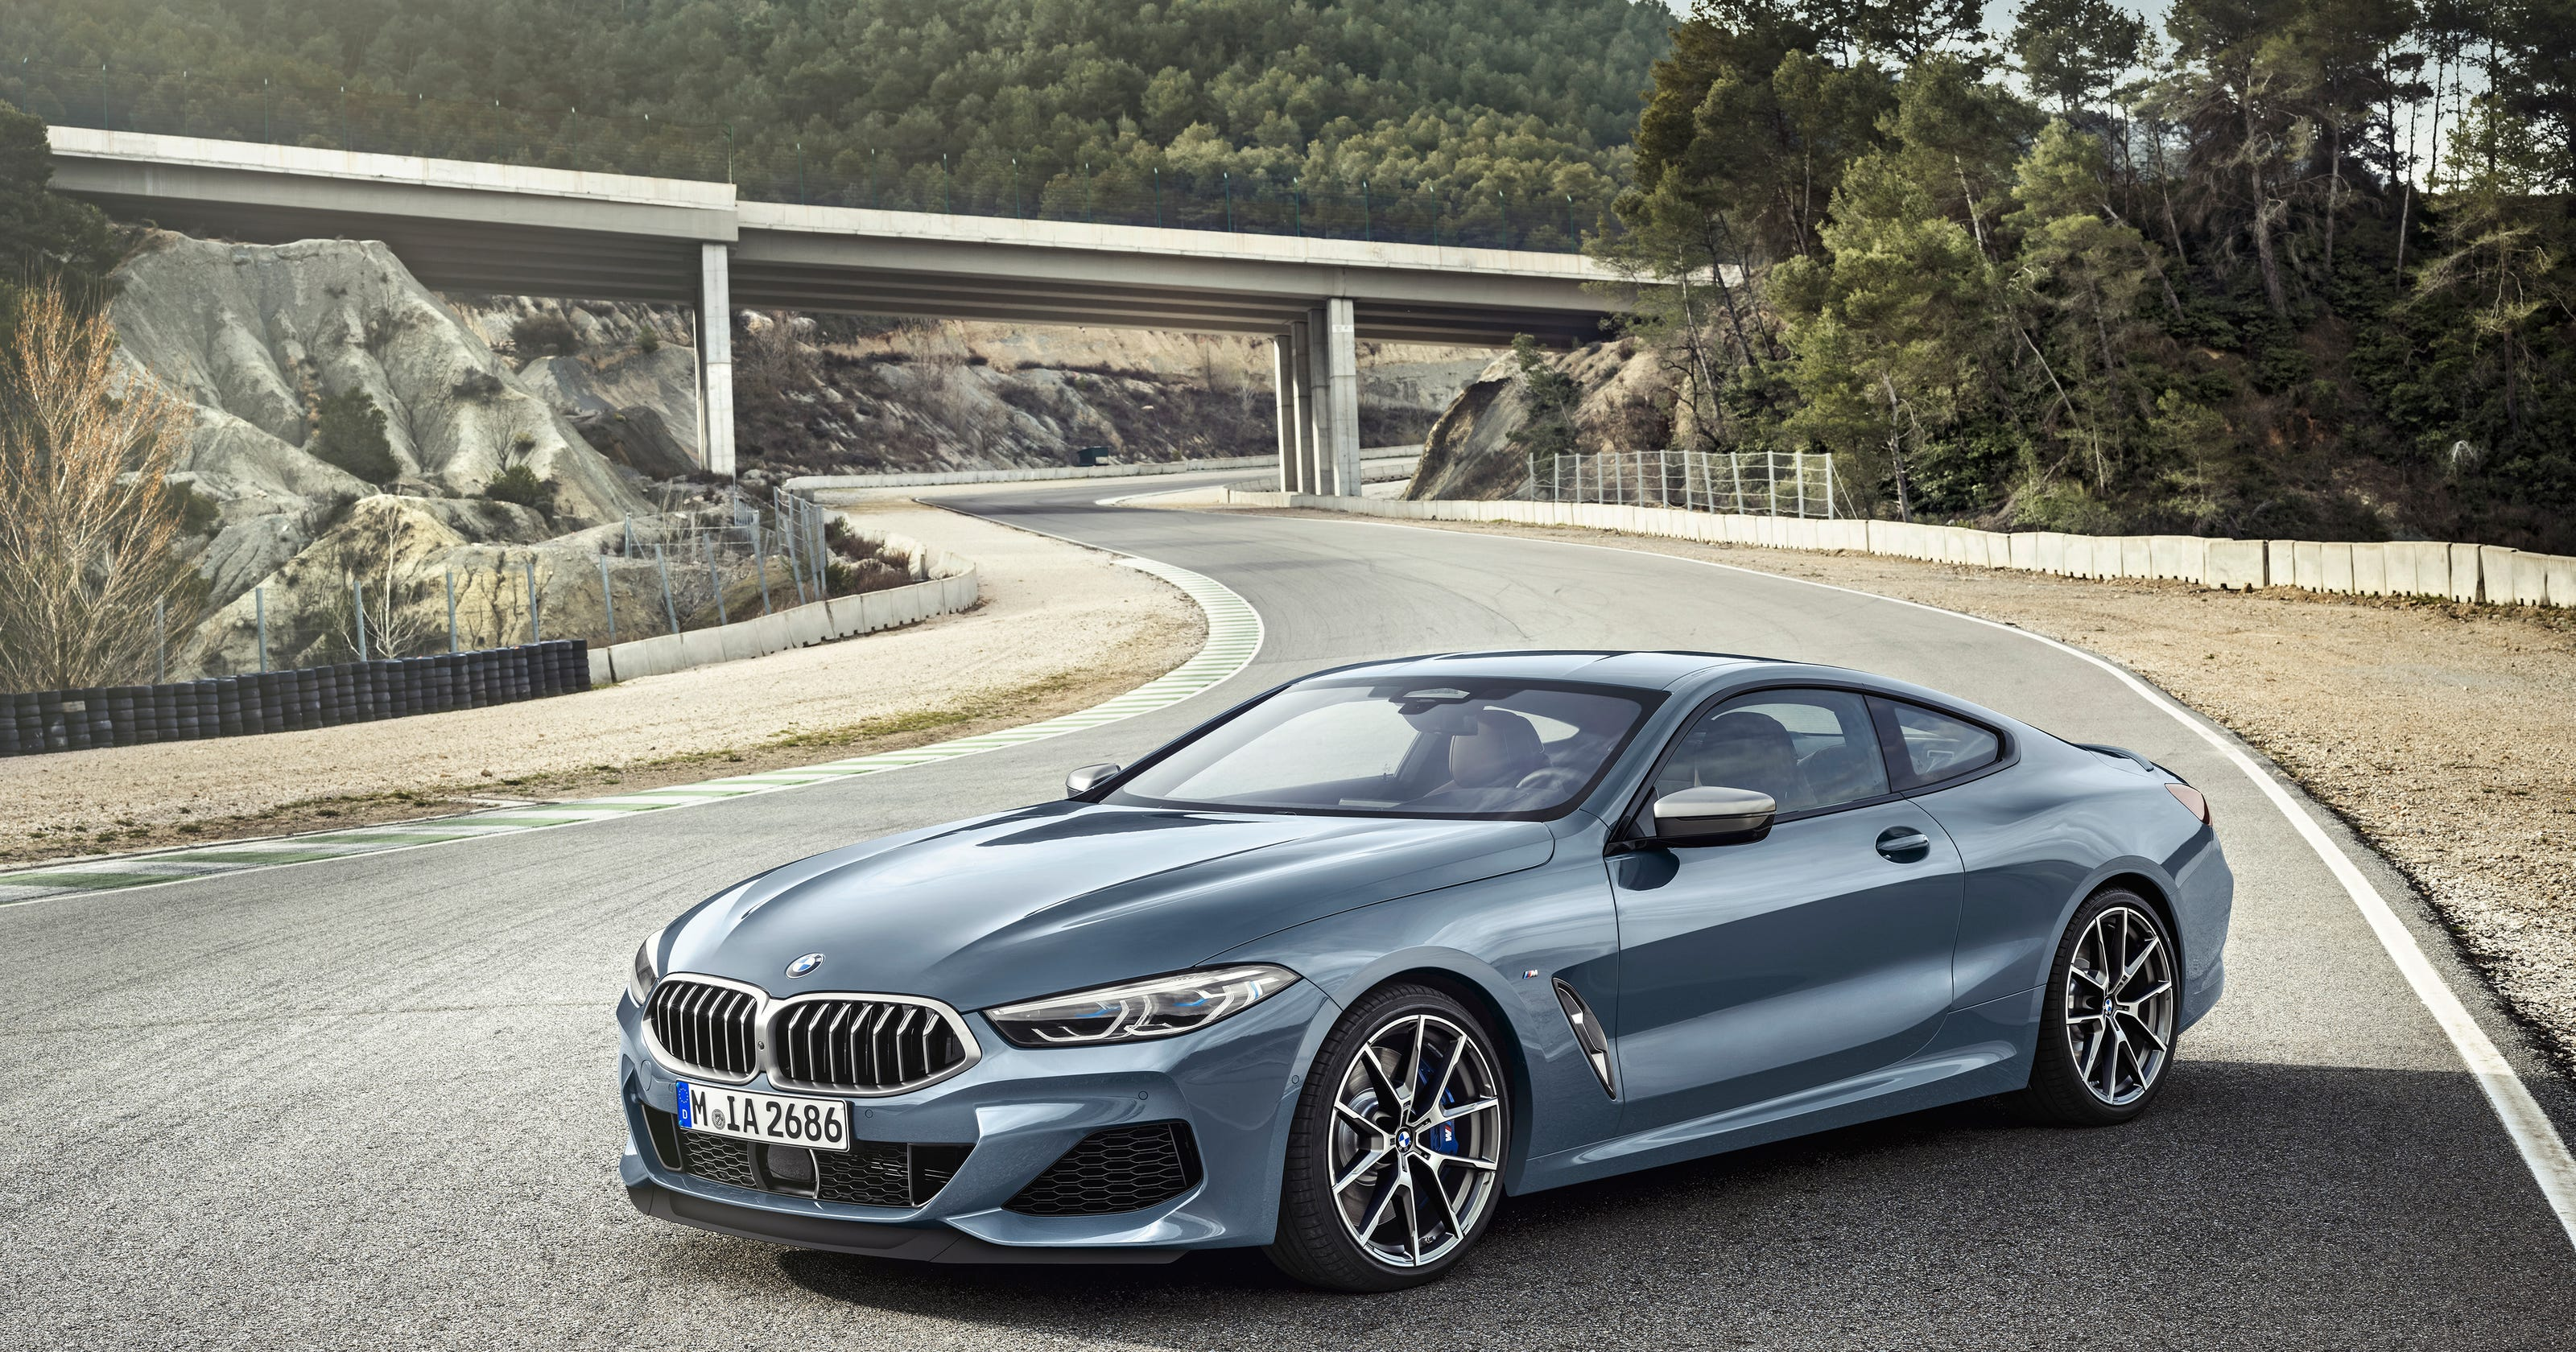 Bmw Reveals All New 8 Series Coupe 523 Horse And 155 Mph